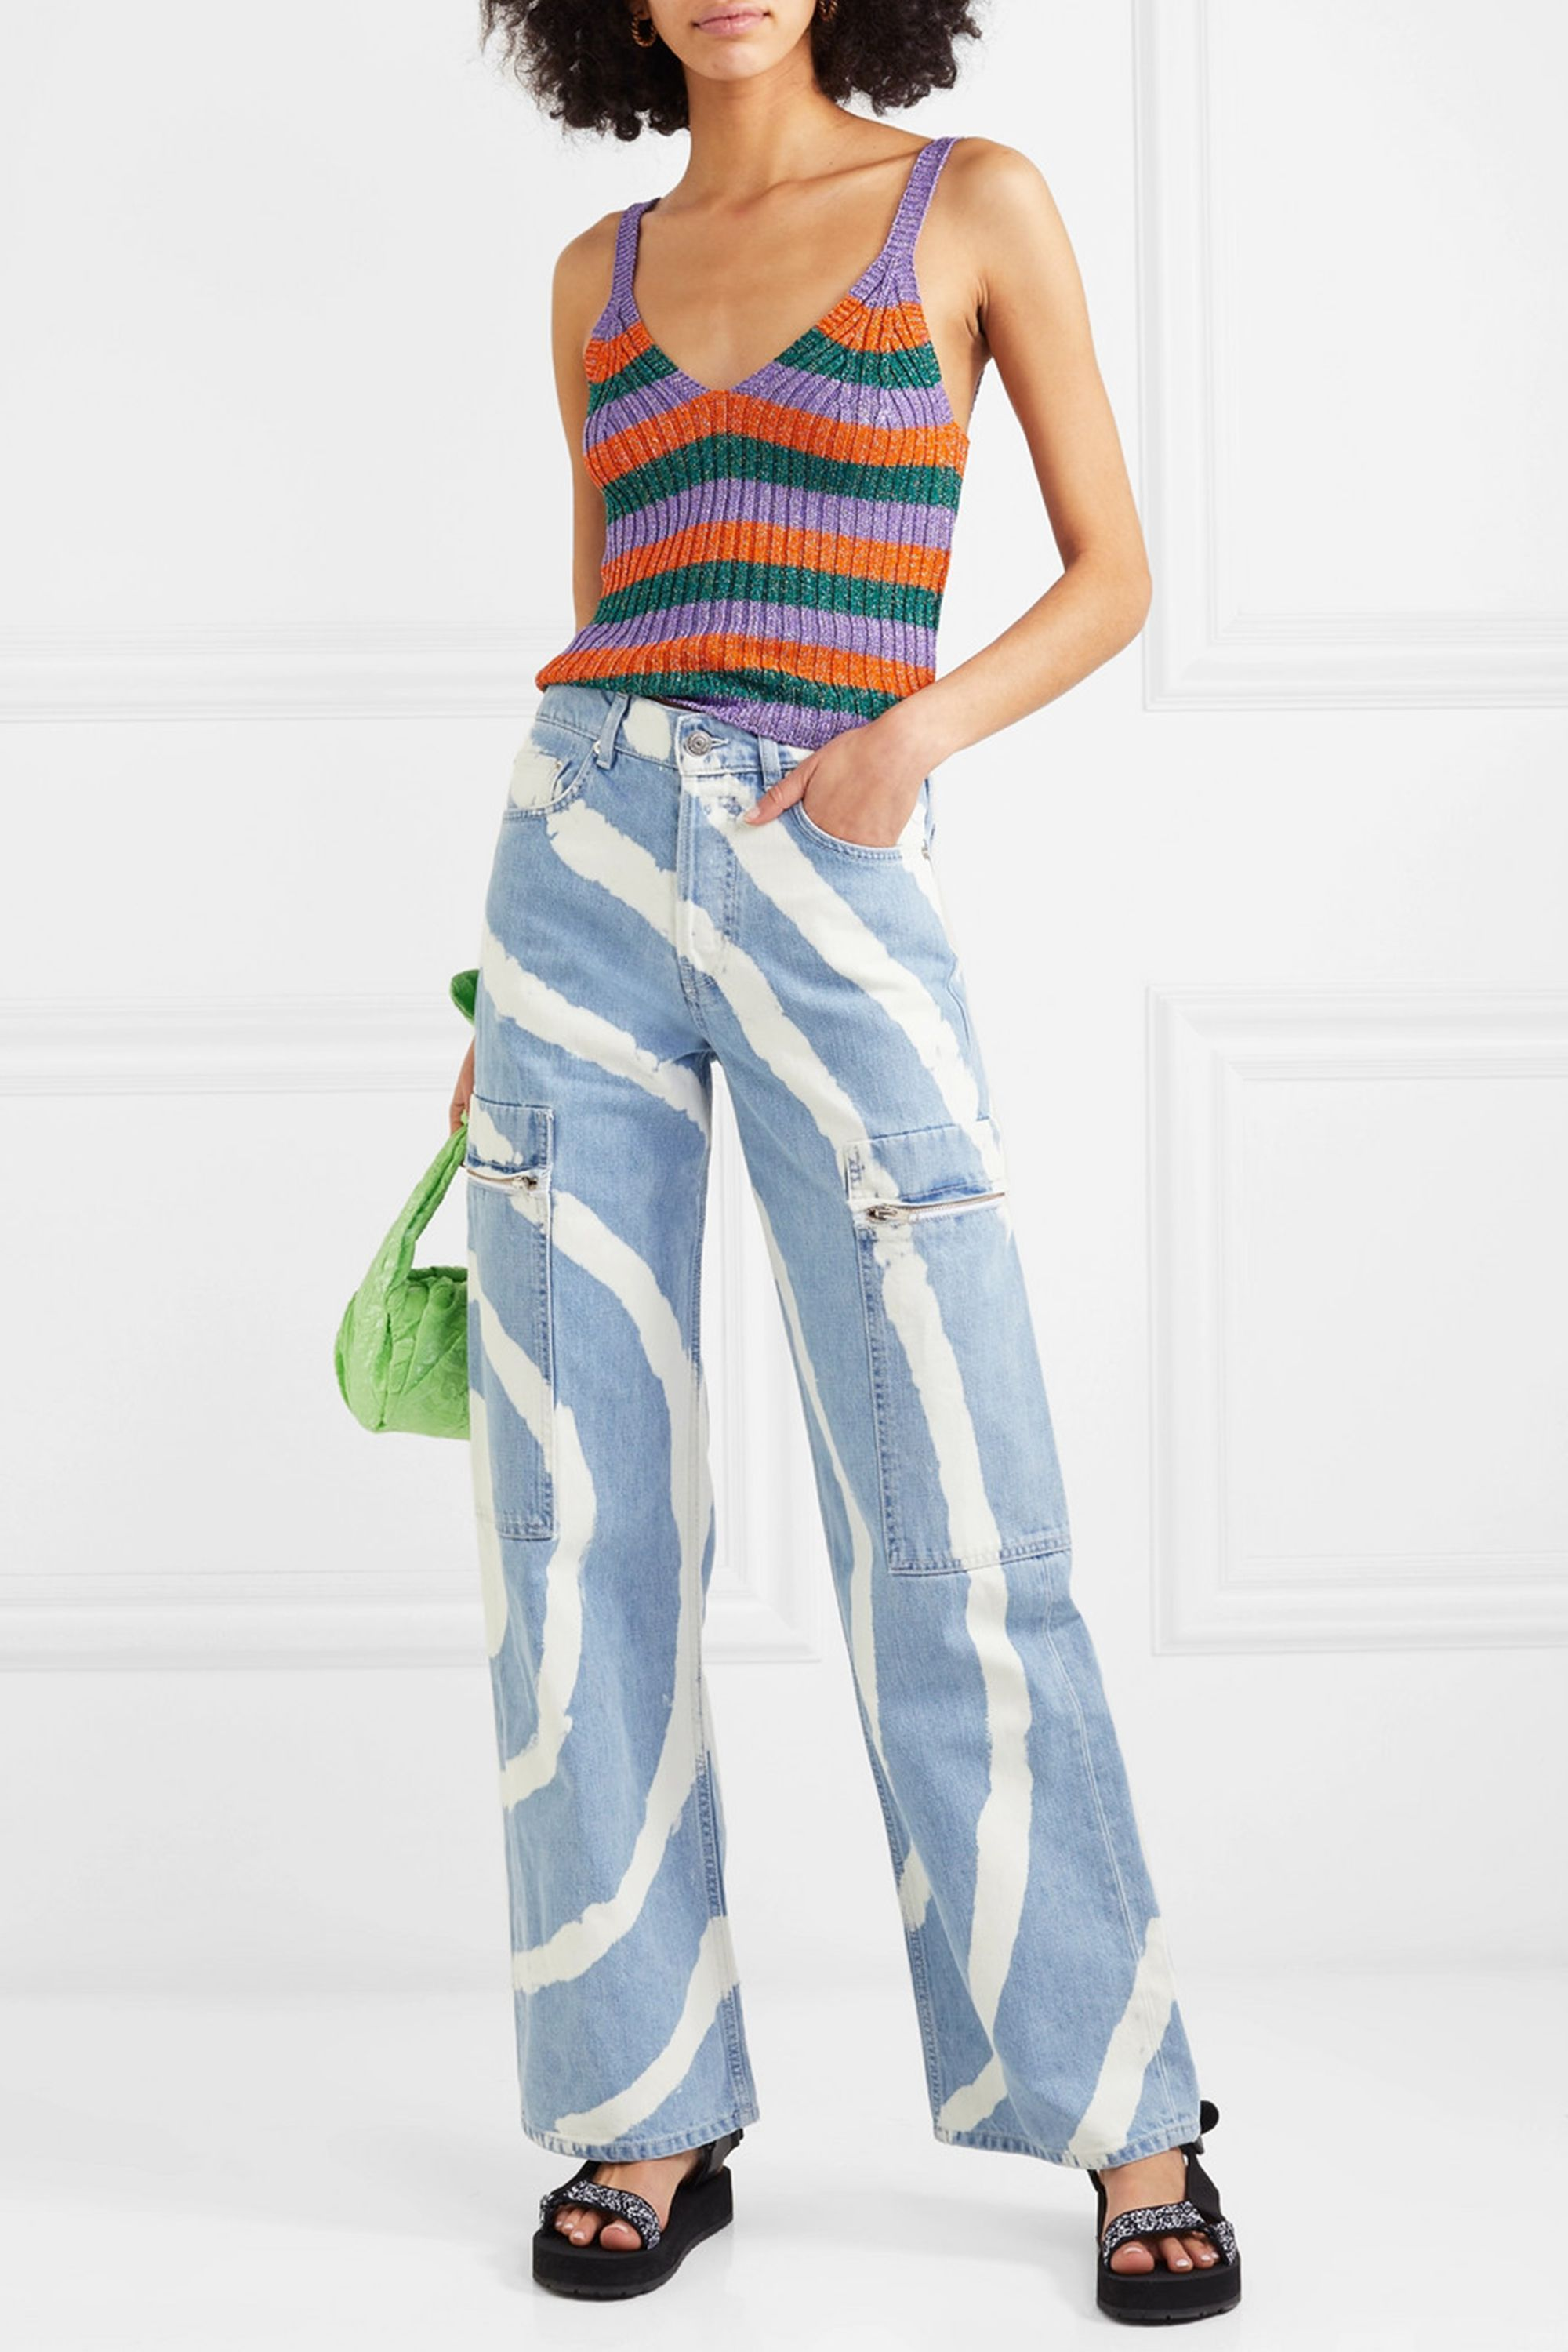 Blackstone Beached Jeans Ganni net-a-porter.com $415.00 SHOP NOW Tie dye is everywhere this season, but give it a shot in denim. Ganni's bleached jeans are perfect, and work well with fun summer trends like metallic knits, hiking sandals, and lime green bags.